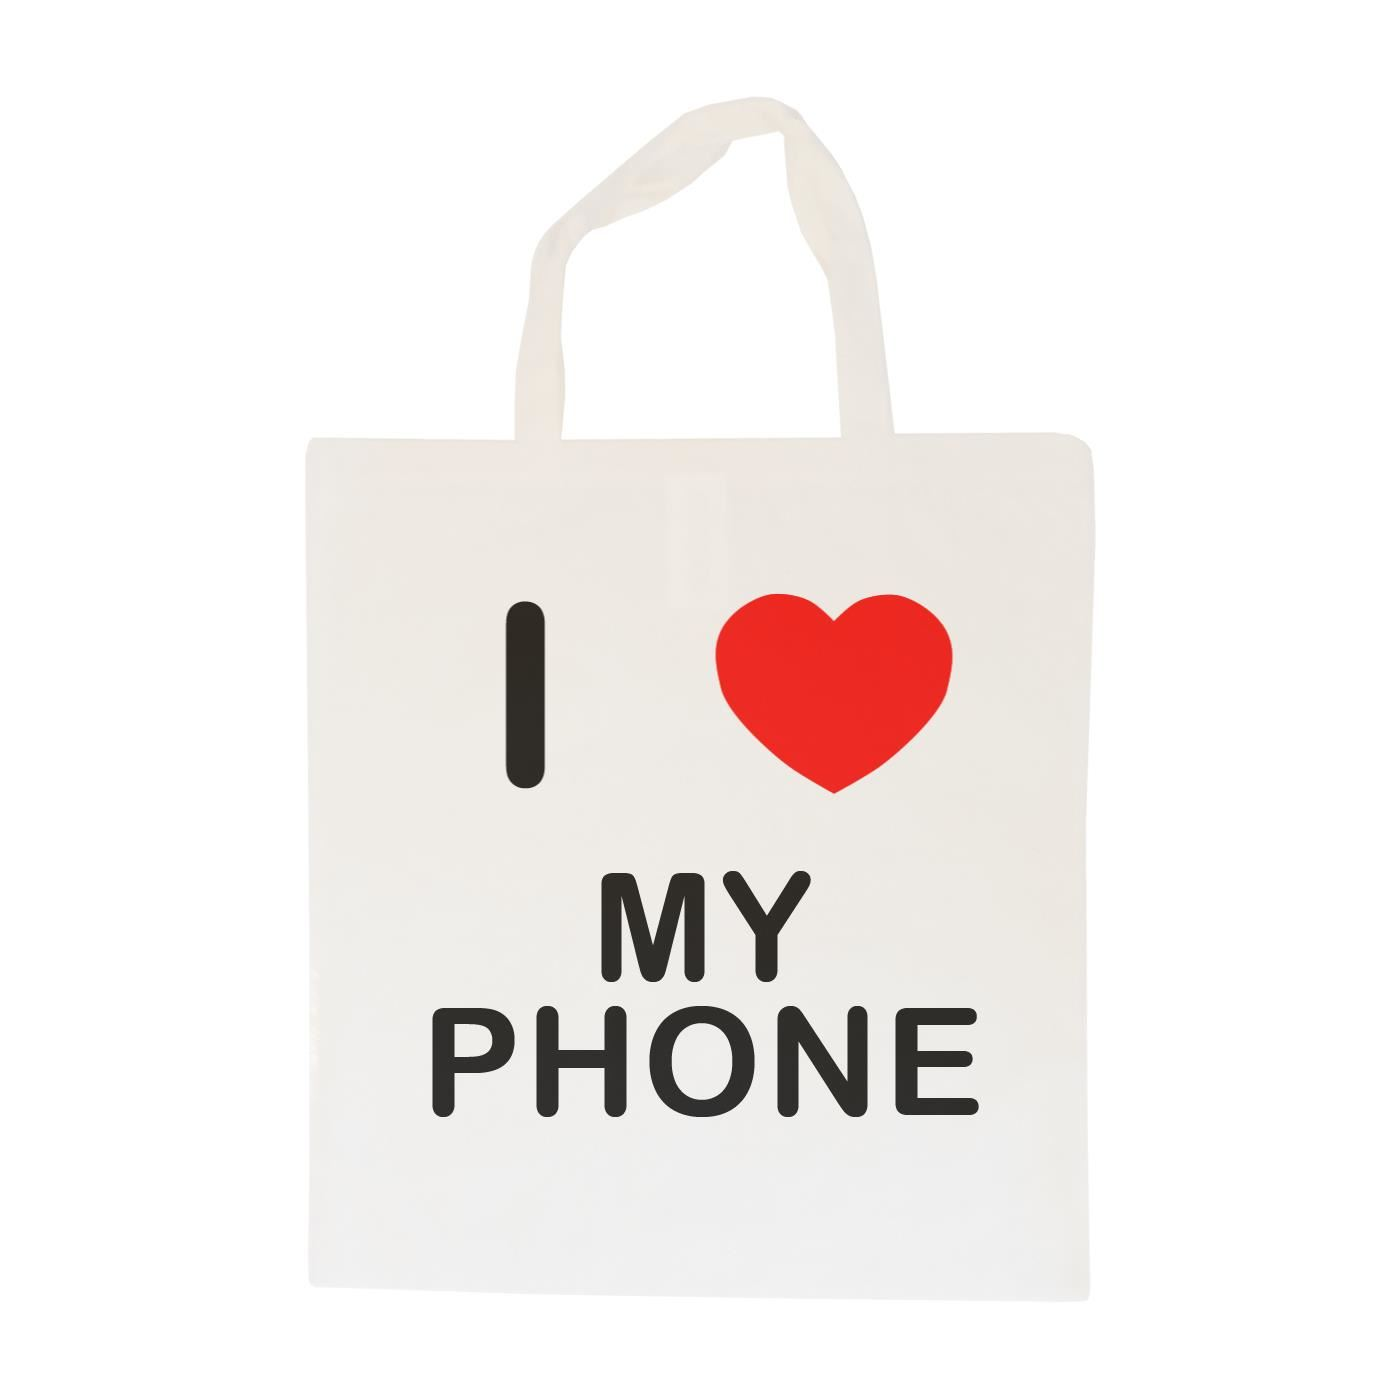 a16482ca0a704 I Love My Phone Cotton Bag Size choice Tote, Shopper or Sling ...